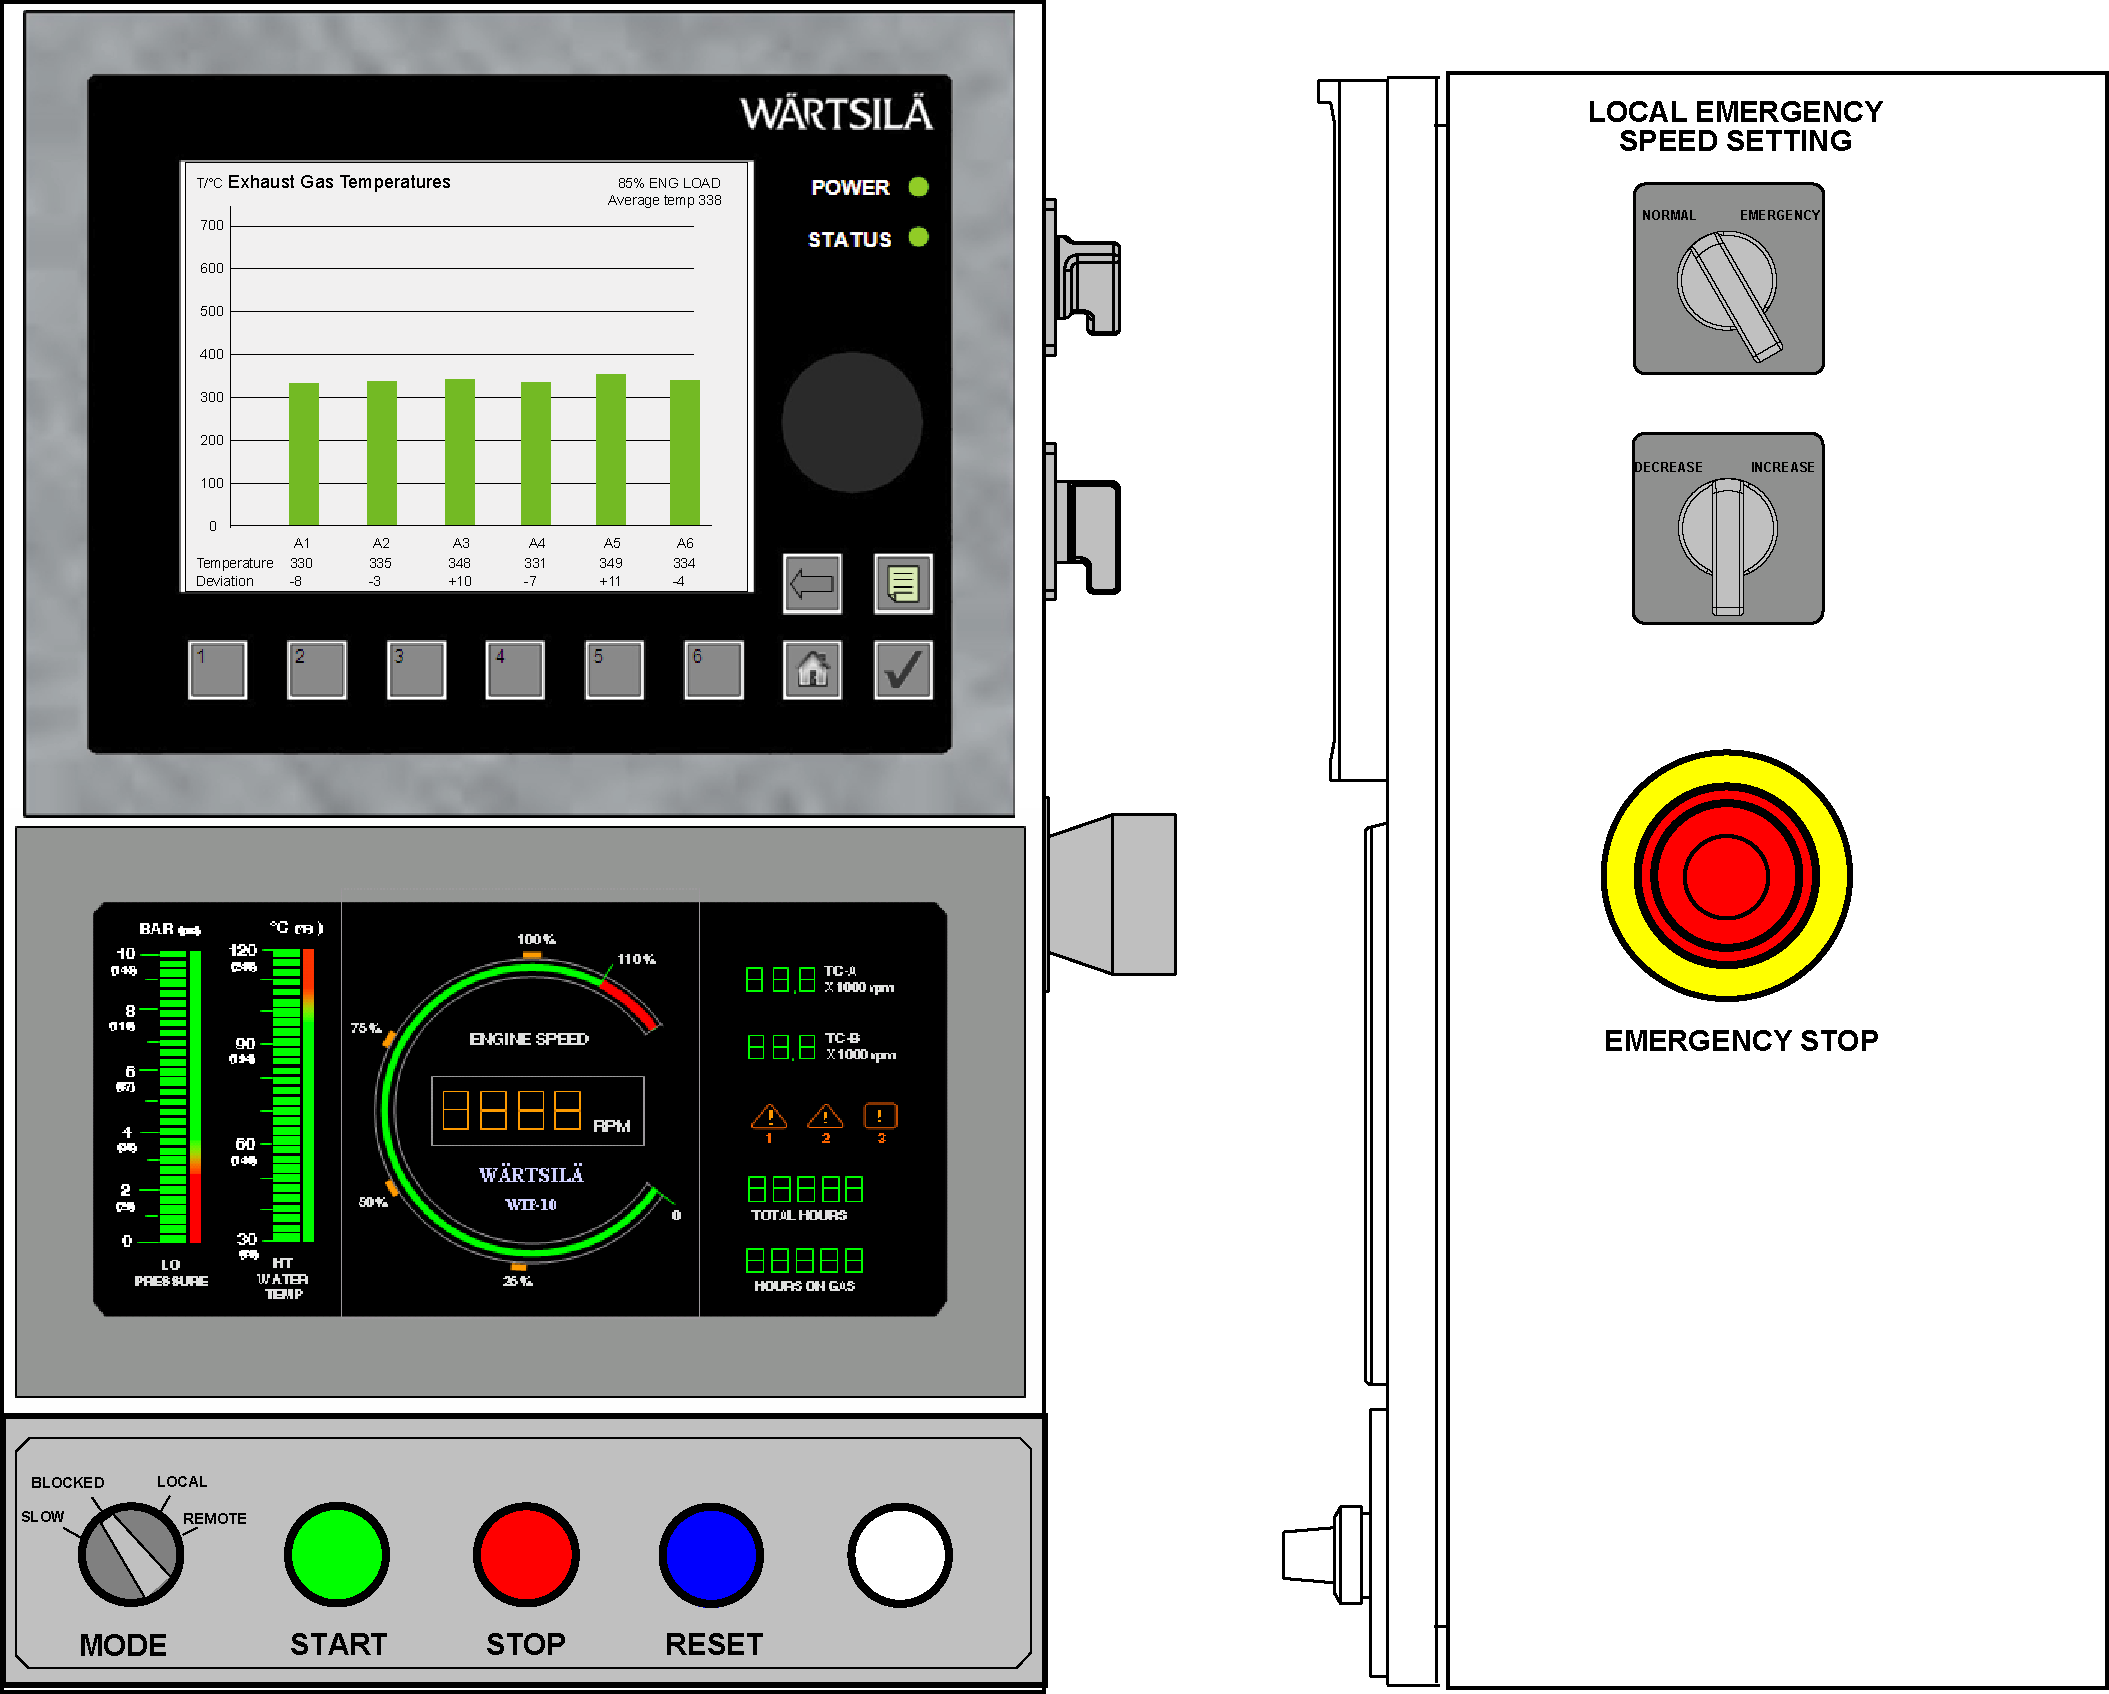 Wärtsilä 34DF Product Guide 14. Automation System Fig 14.1.1.1 Local control panel and local display unit 14.1.2 Engine safety system The engine safety module handles fundamental safety functions, for example overspeed protection.